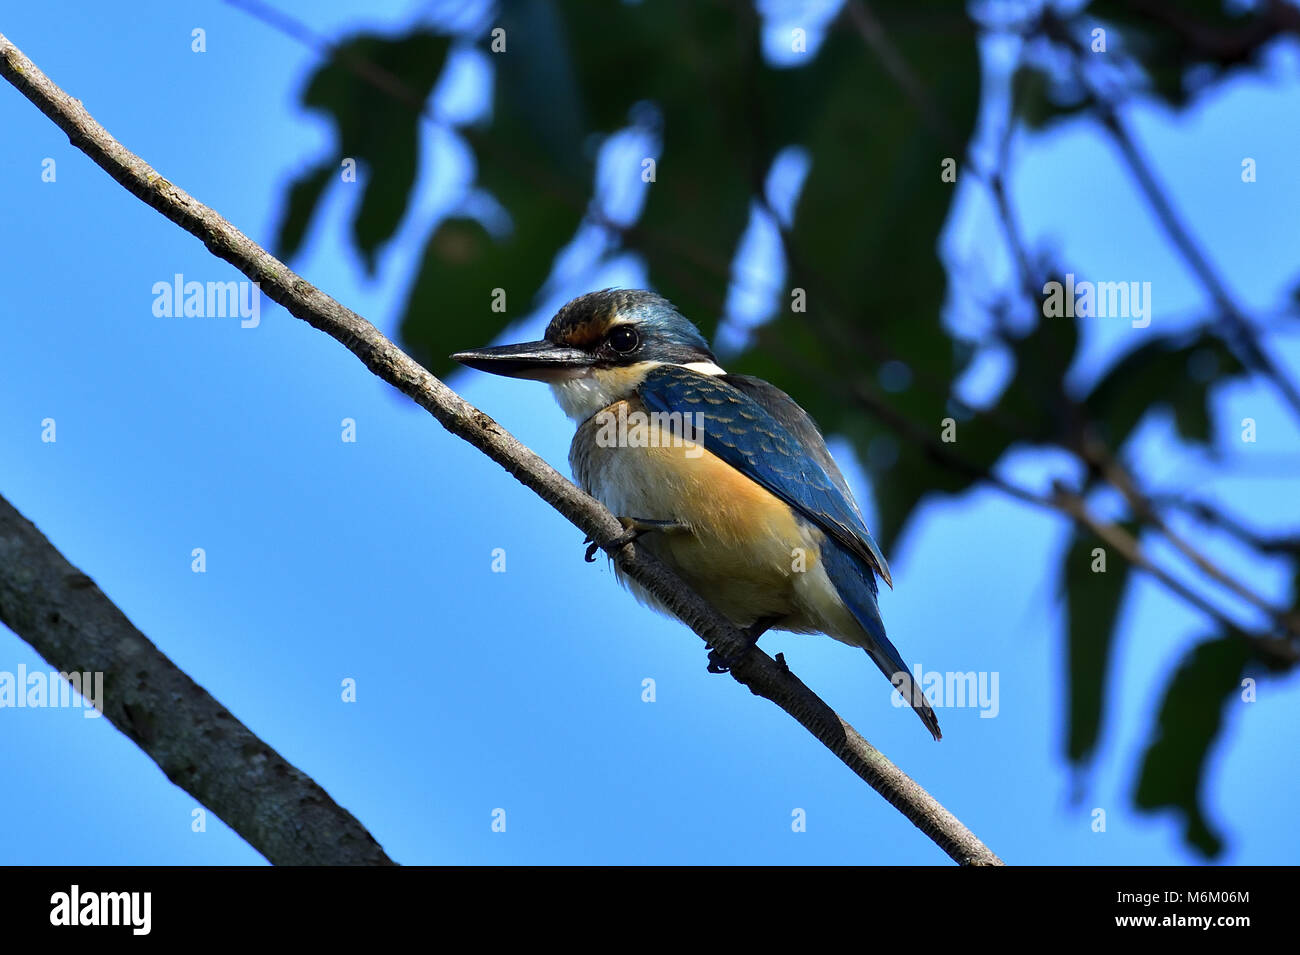 An Australian Immature Sacred Kingfisher resting on a Tree branch close-up - Stock Image